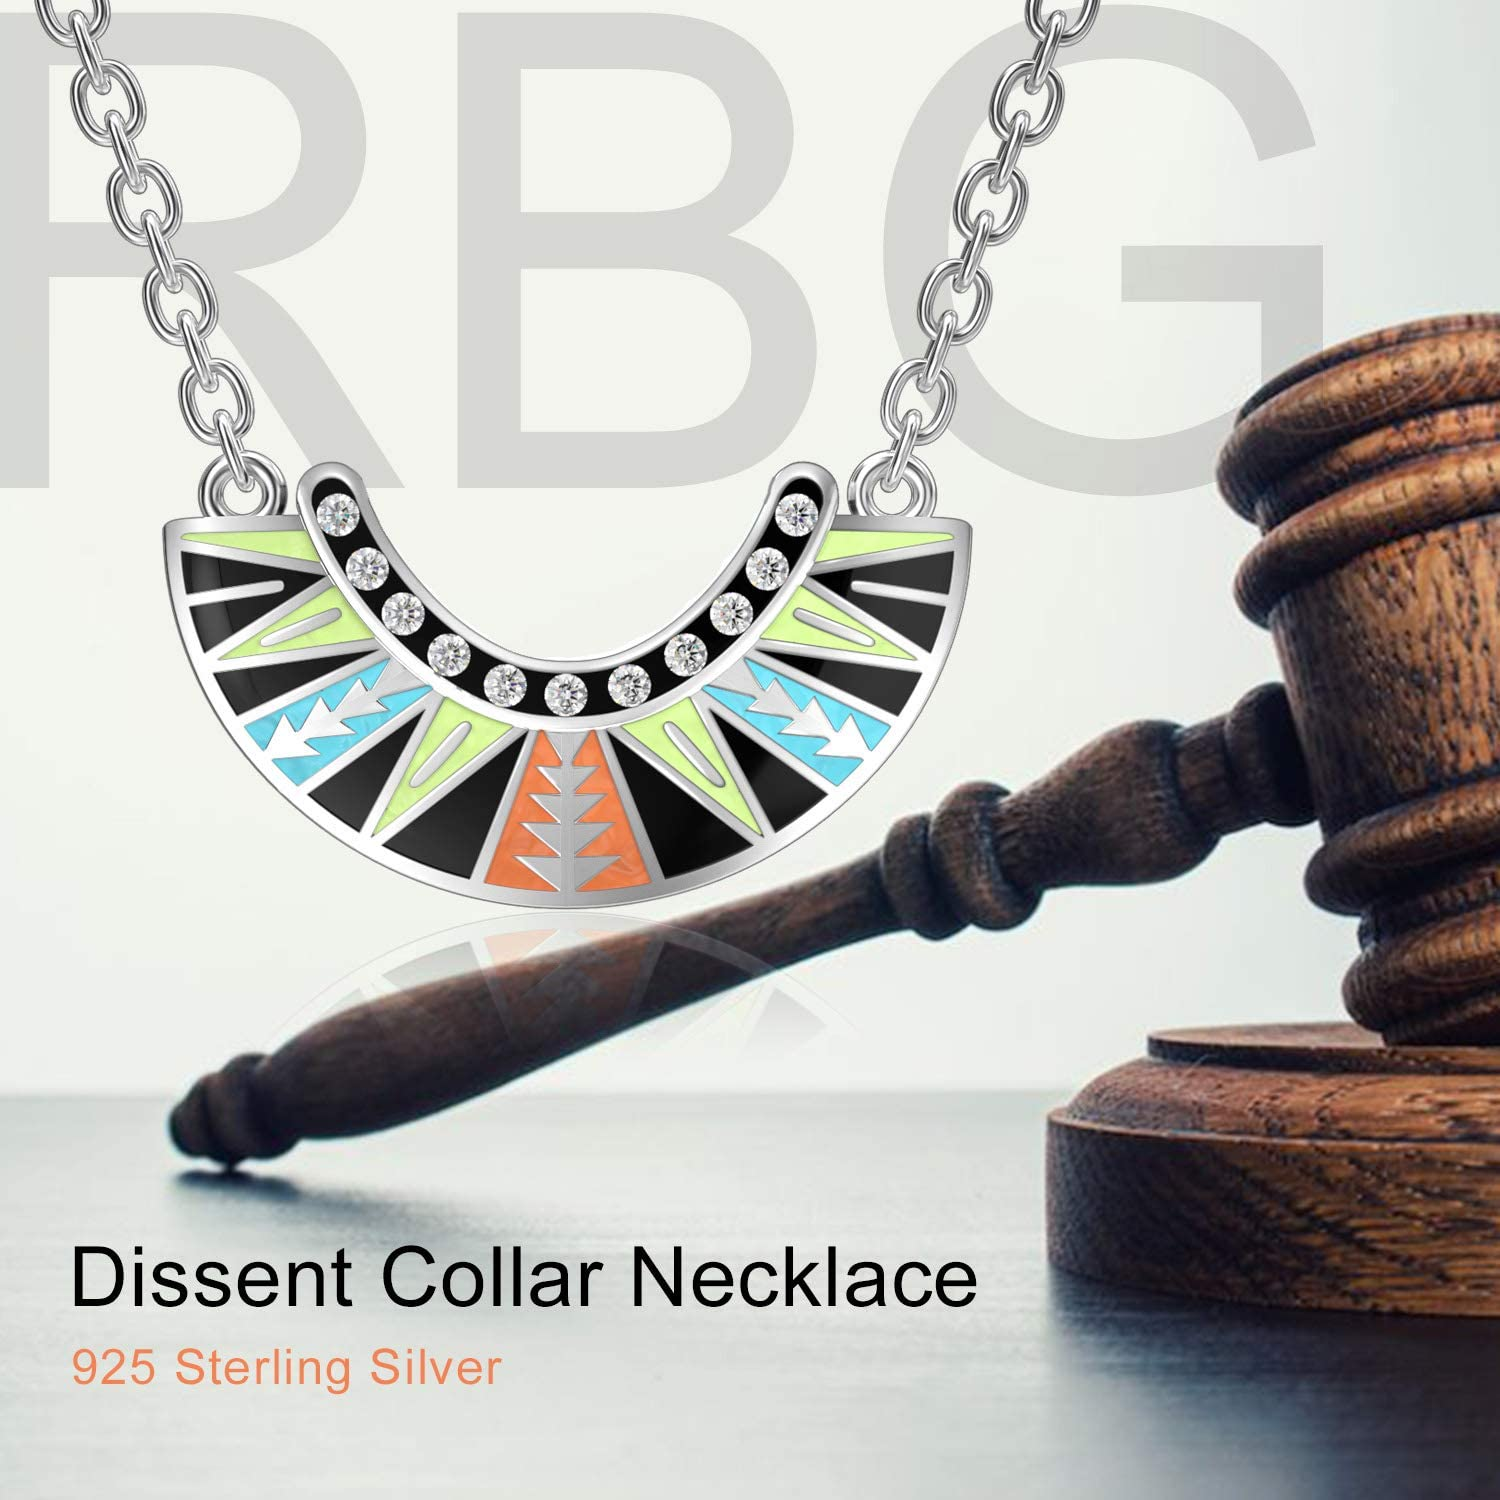 925 Sterling Silver Dissent Collar Pendant Necklace With Crystal